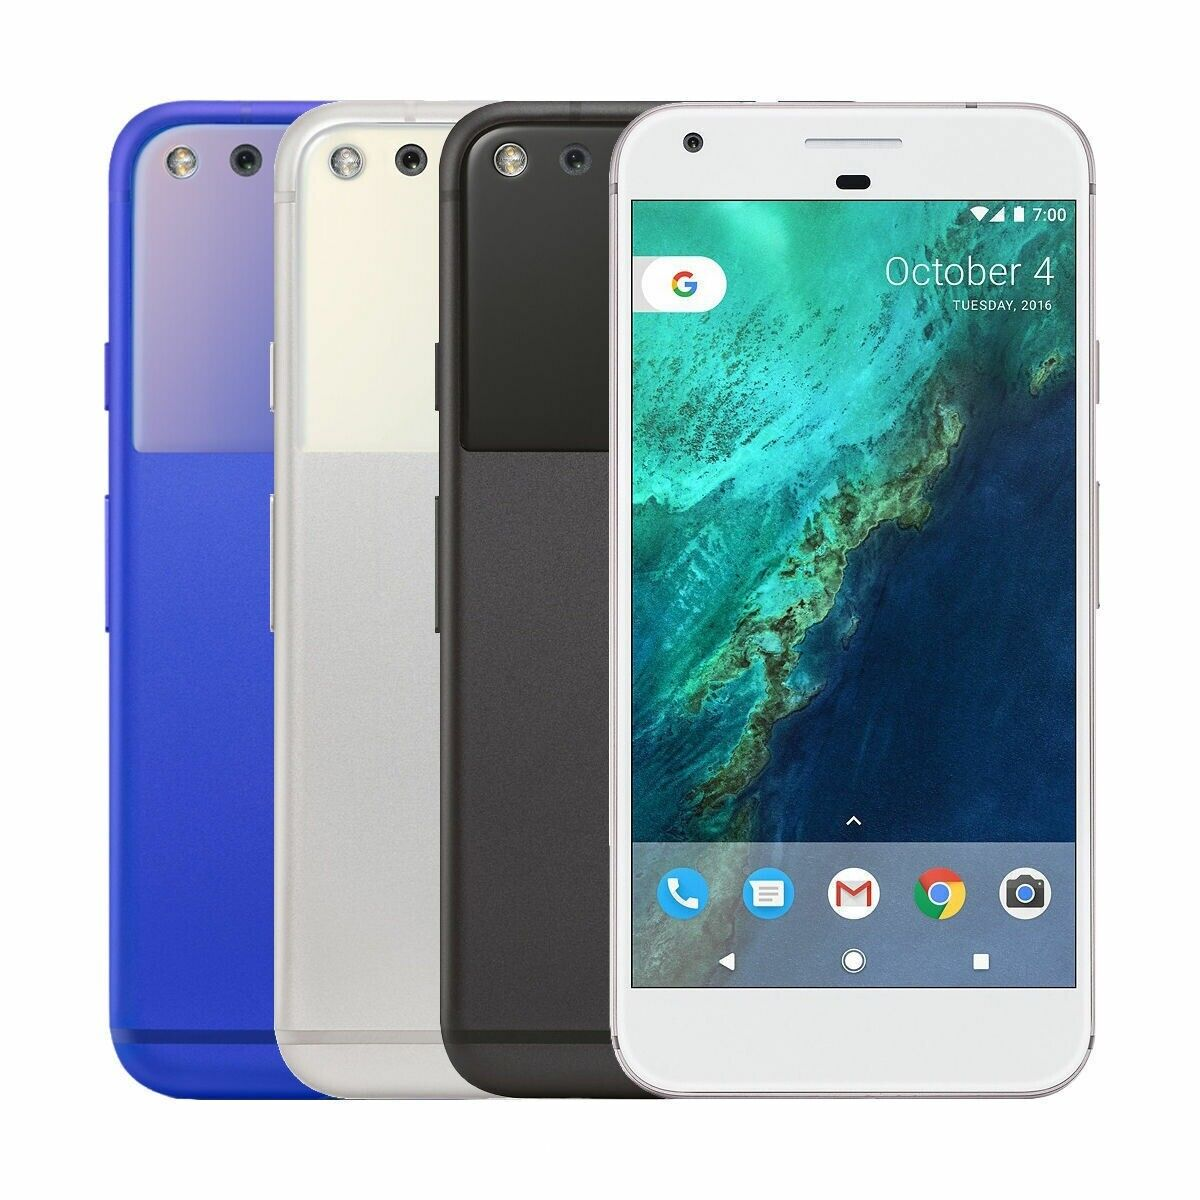 Android Phone - Google Pixel XL 32gb 128gb Blue Silver Black Unlocked Android GSM World Phone